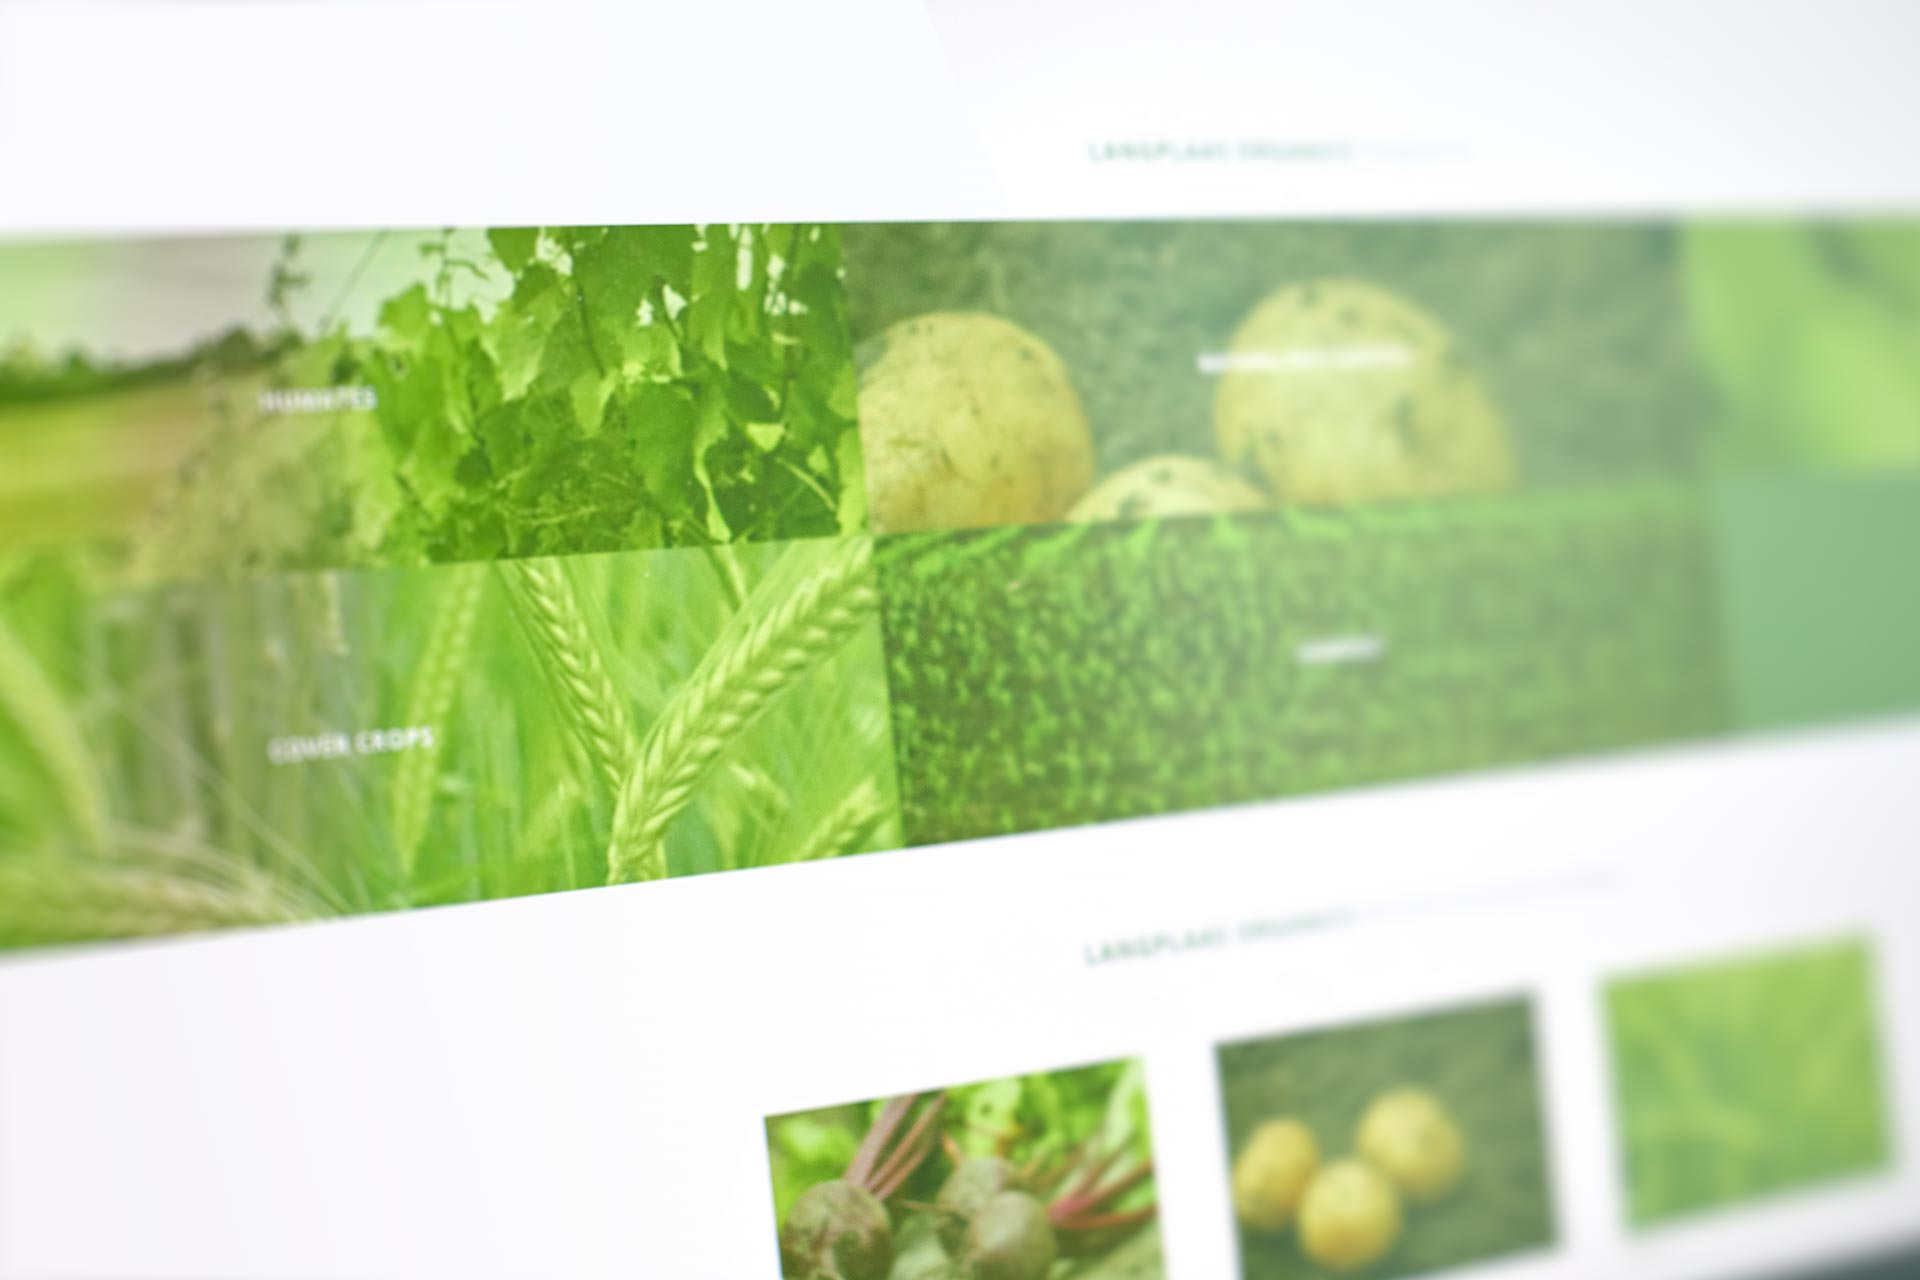 Langplaas Organics Web Design by Black Rooster Studios.